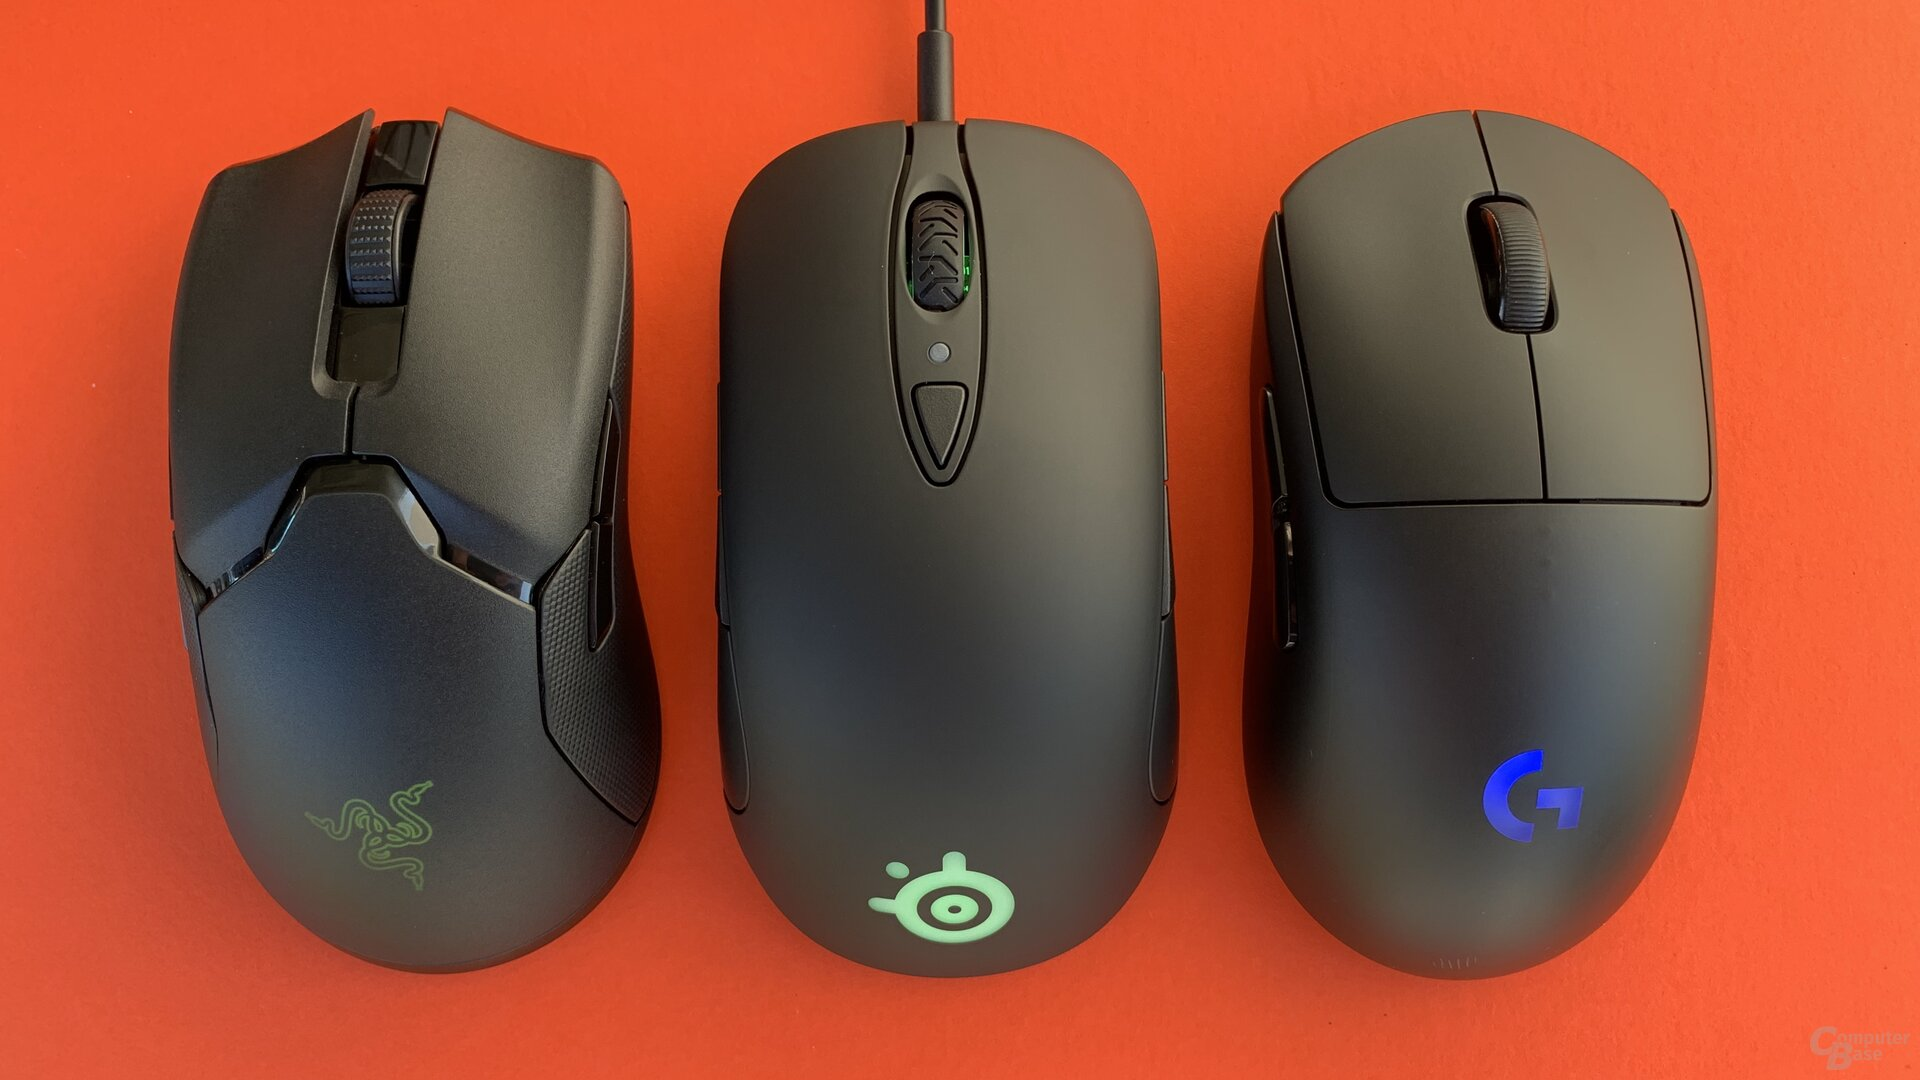 Razer Viper Ultimate, SteelSeries Sensei Ten & Logitech G Pro Wireless